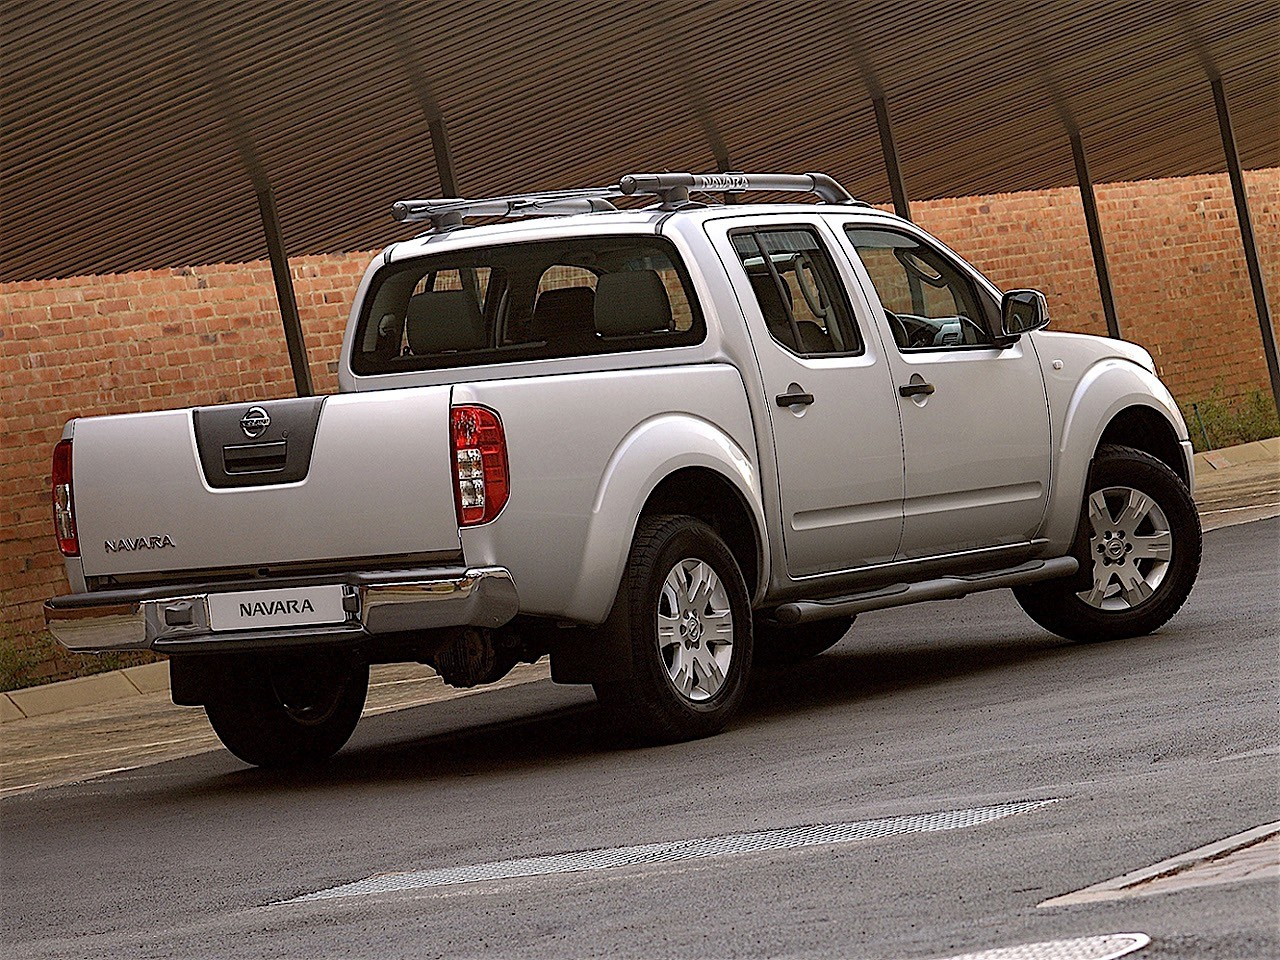 nissan navara frontier double cab specs 2005 2006 2007 2008 2009 2010 2011 2012 2013. Black Bedroom Furniture Sets. Home Design Ideas